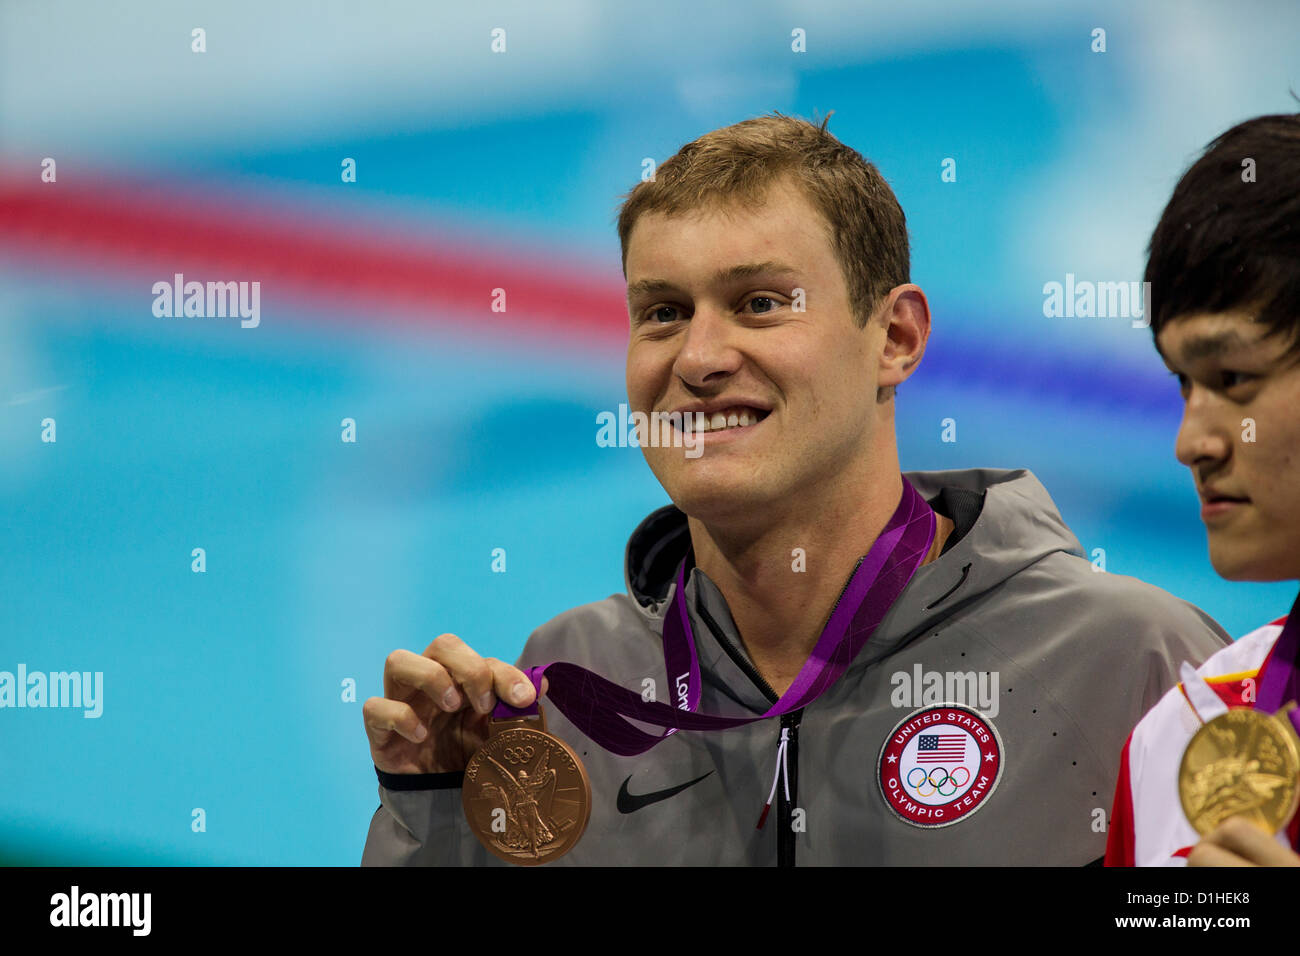 Peter Vanderkaay (USA) wins the bronze medal in the Men's 400 meter Freestyle Final at the 2012 Olympic Summer - Stock Image